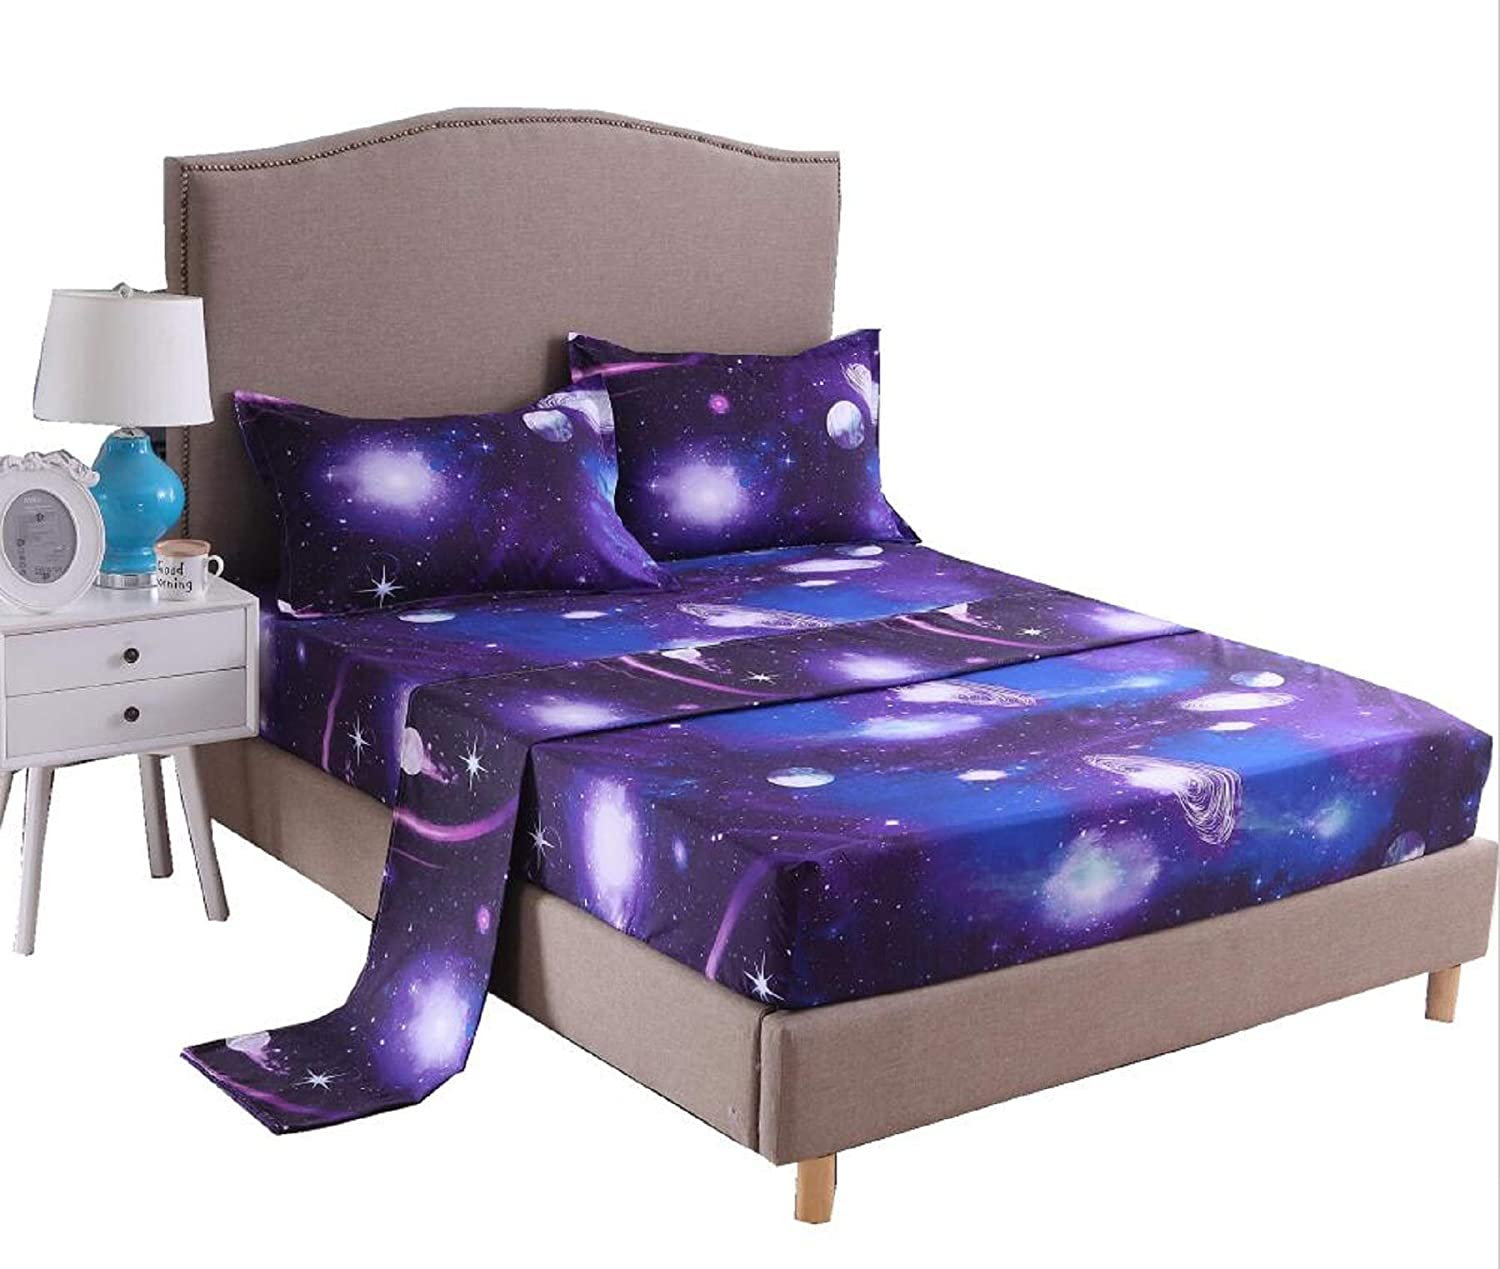 A Nice Night Galaxy 3D Printing Bed Sheet Bedding Set, 100% Soft Microfiber Fitted Sheet (Queen, 07)